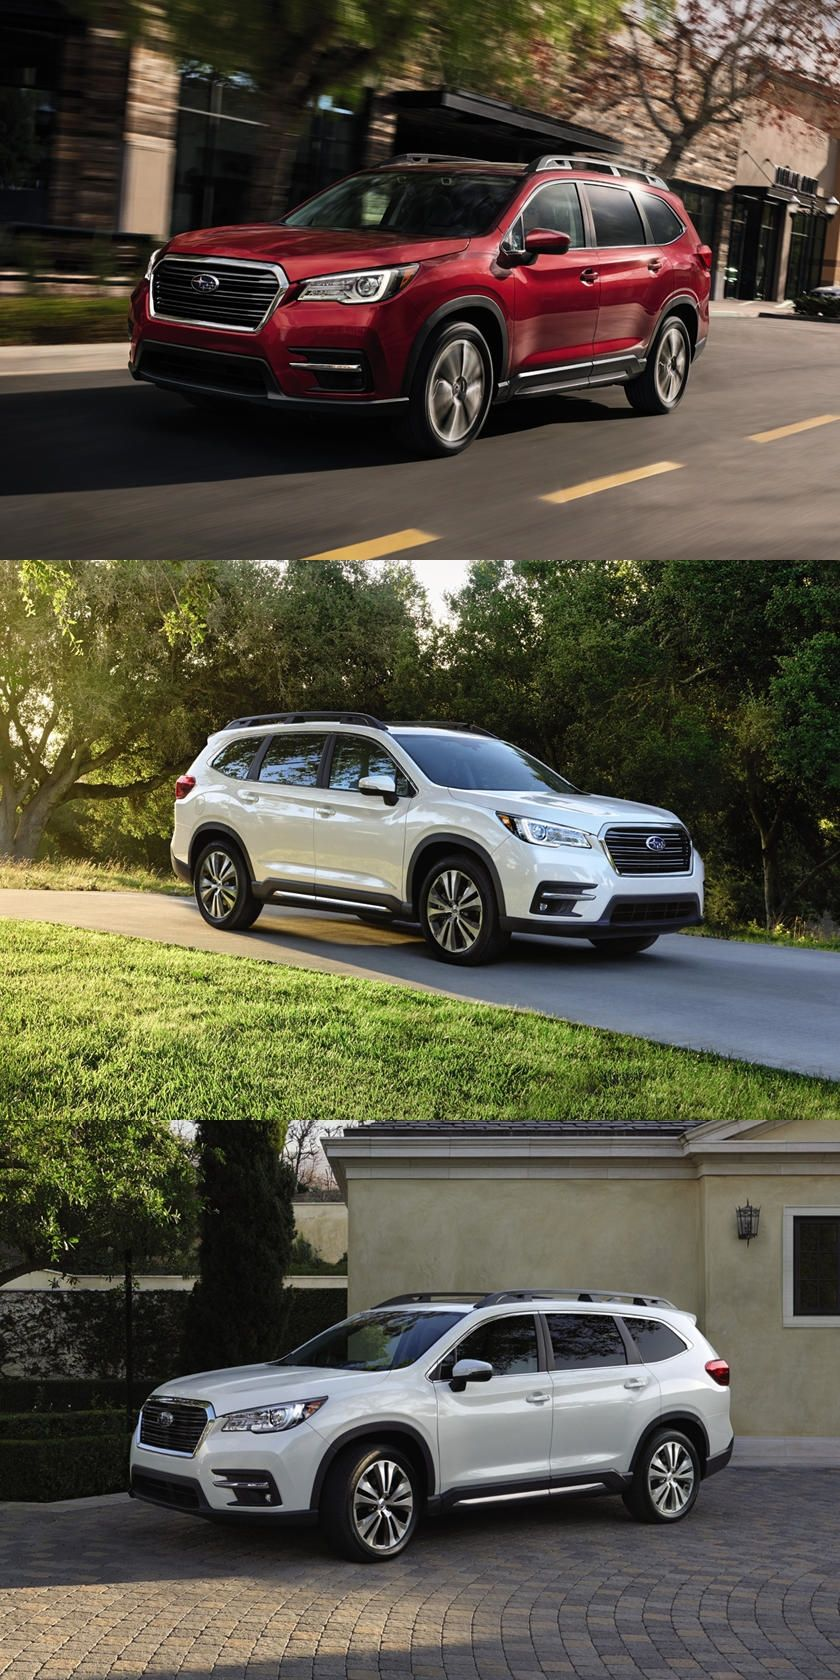 2021 Subaru Ascent Gets A Price Increase But There S A Good Reason Why In 2020 Subaru Price Increase Front View Camera